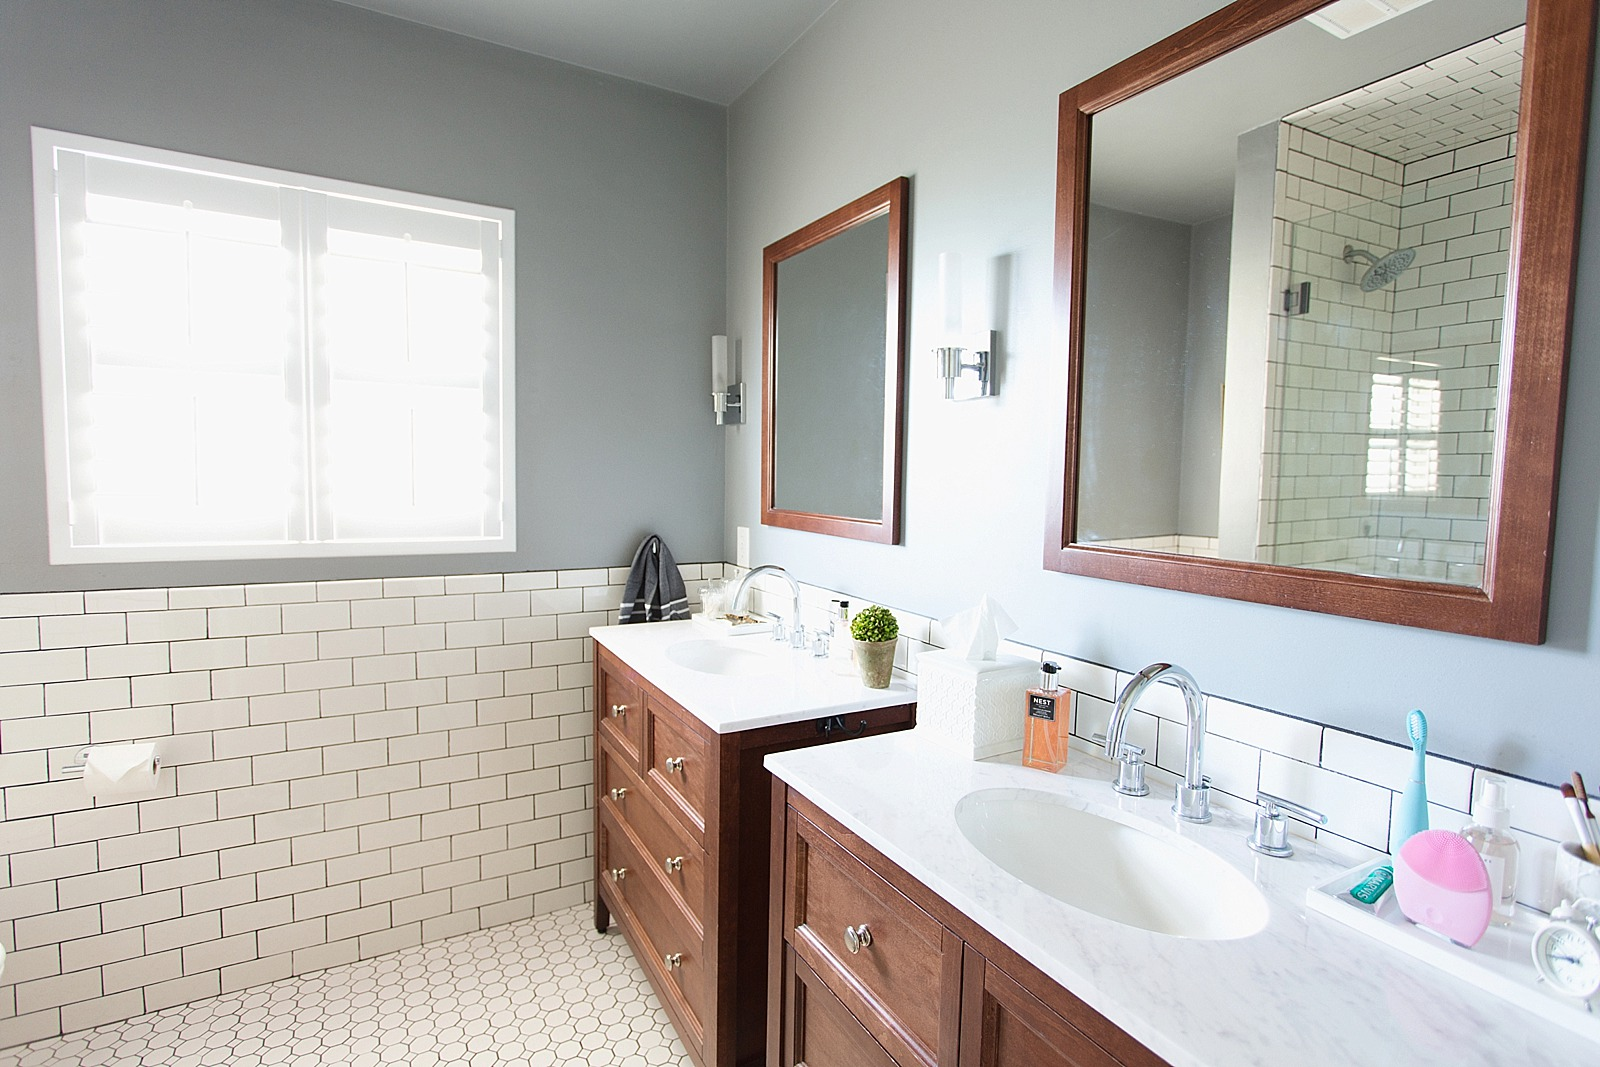 White Subway Tile With Dark Black Grout Bathroom Jonathan Adler Touches  Zebra Rug And Bathroom Refresh ...